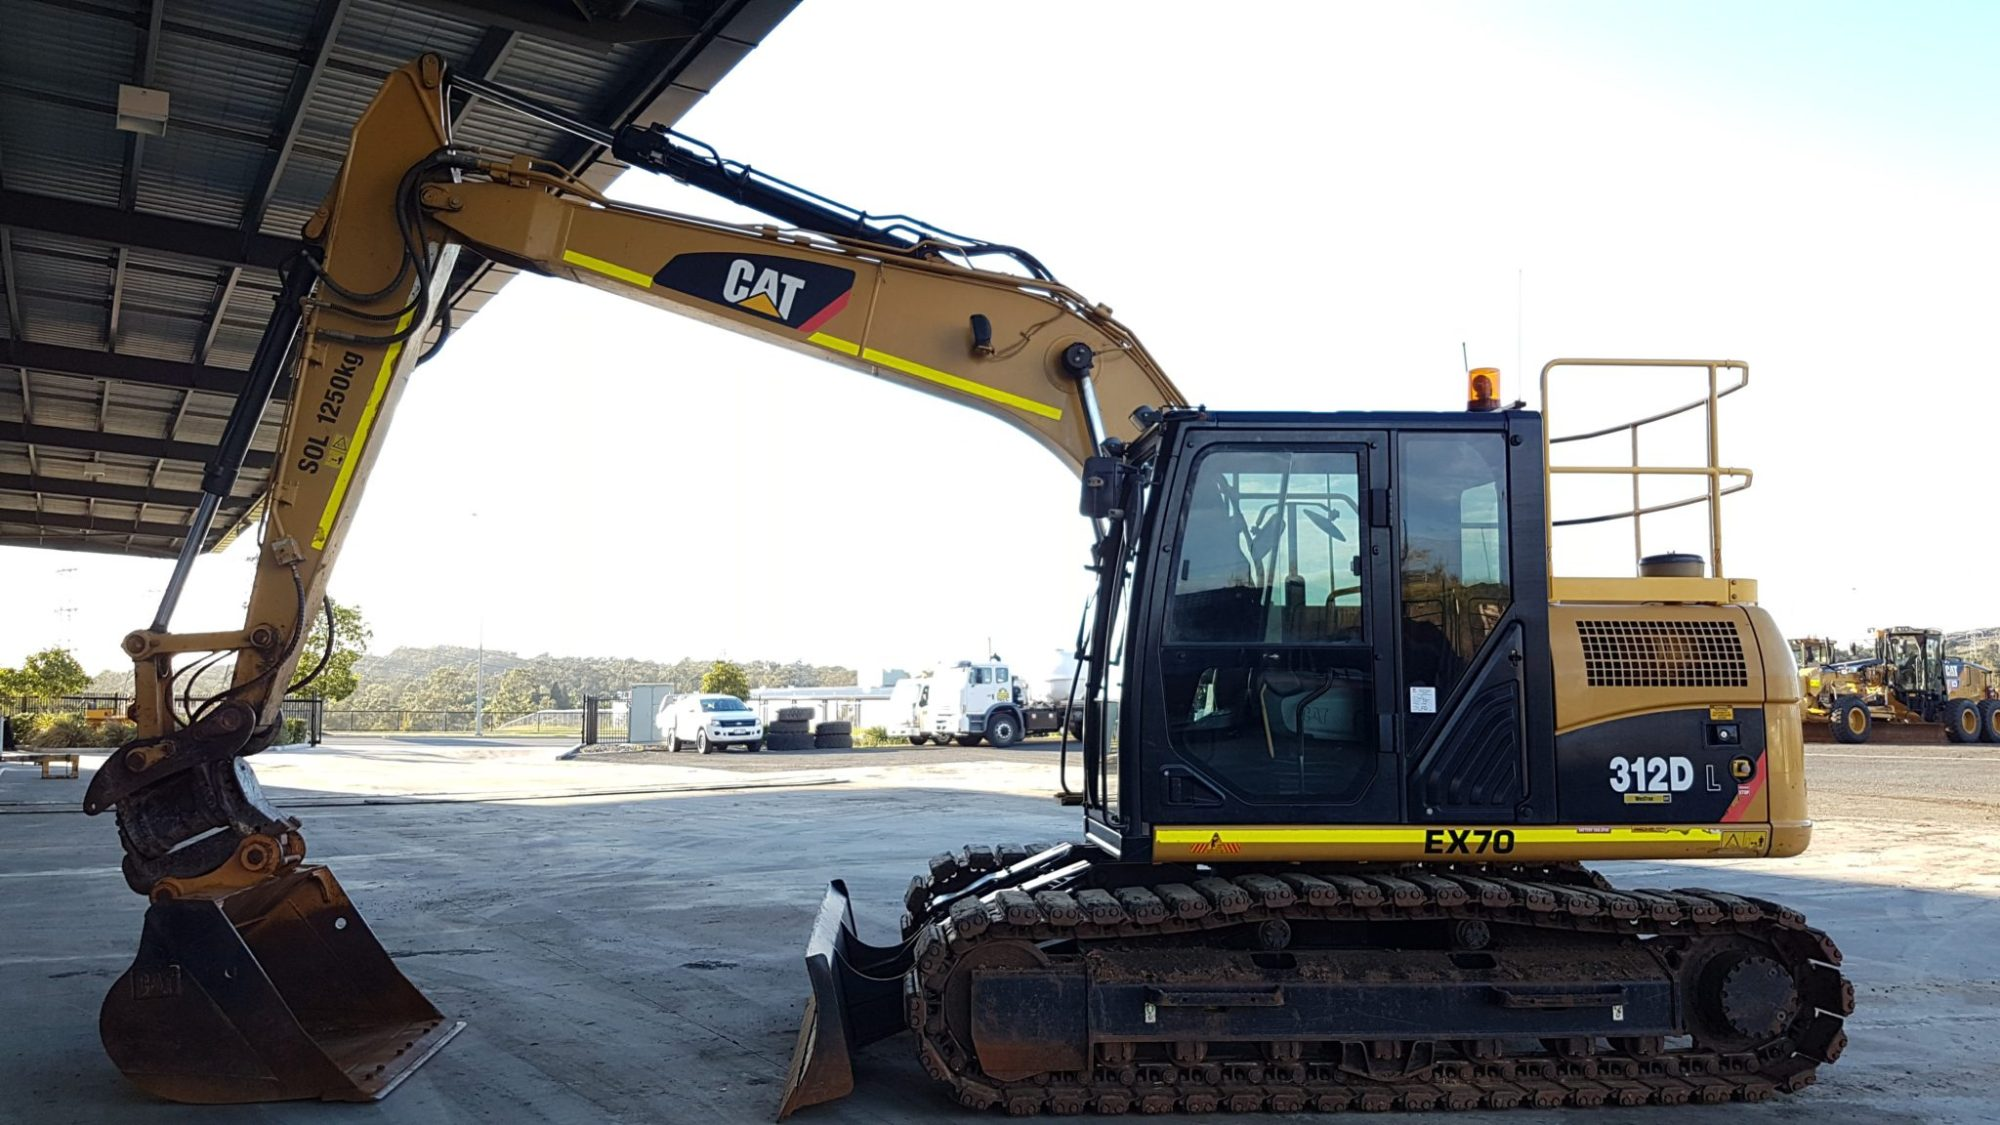 hight resolution of caterpillar 312d excavator for hire